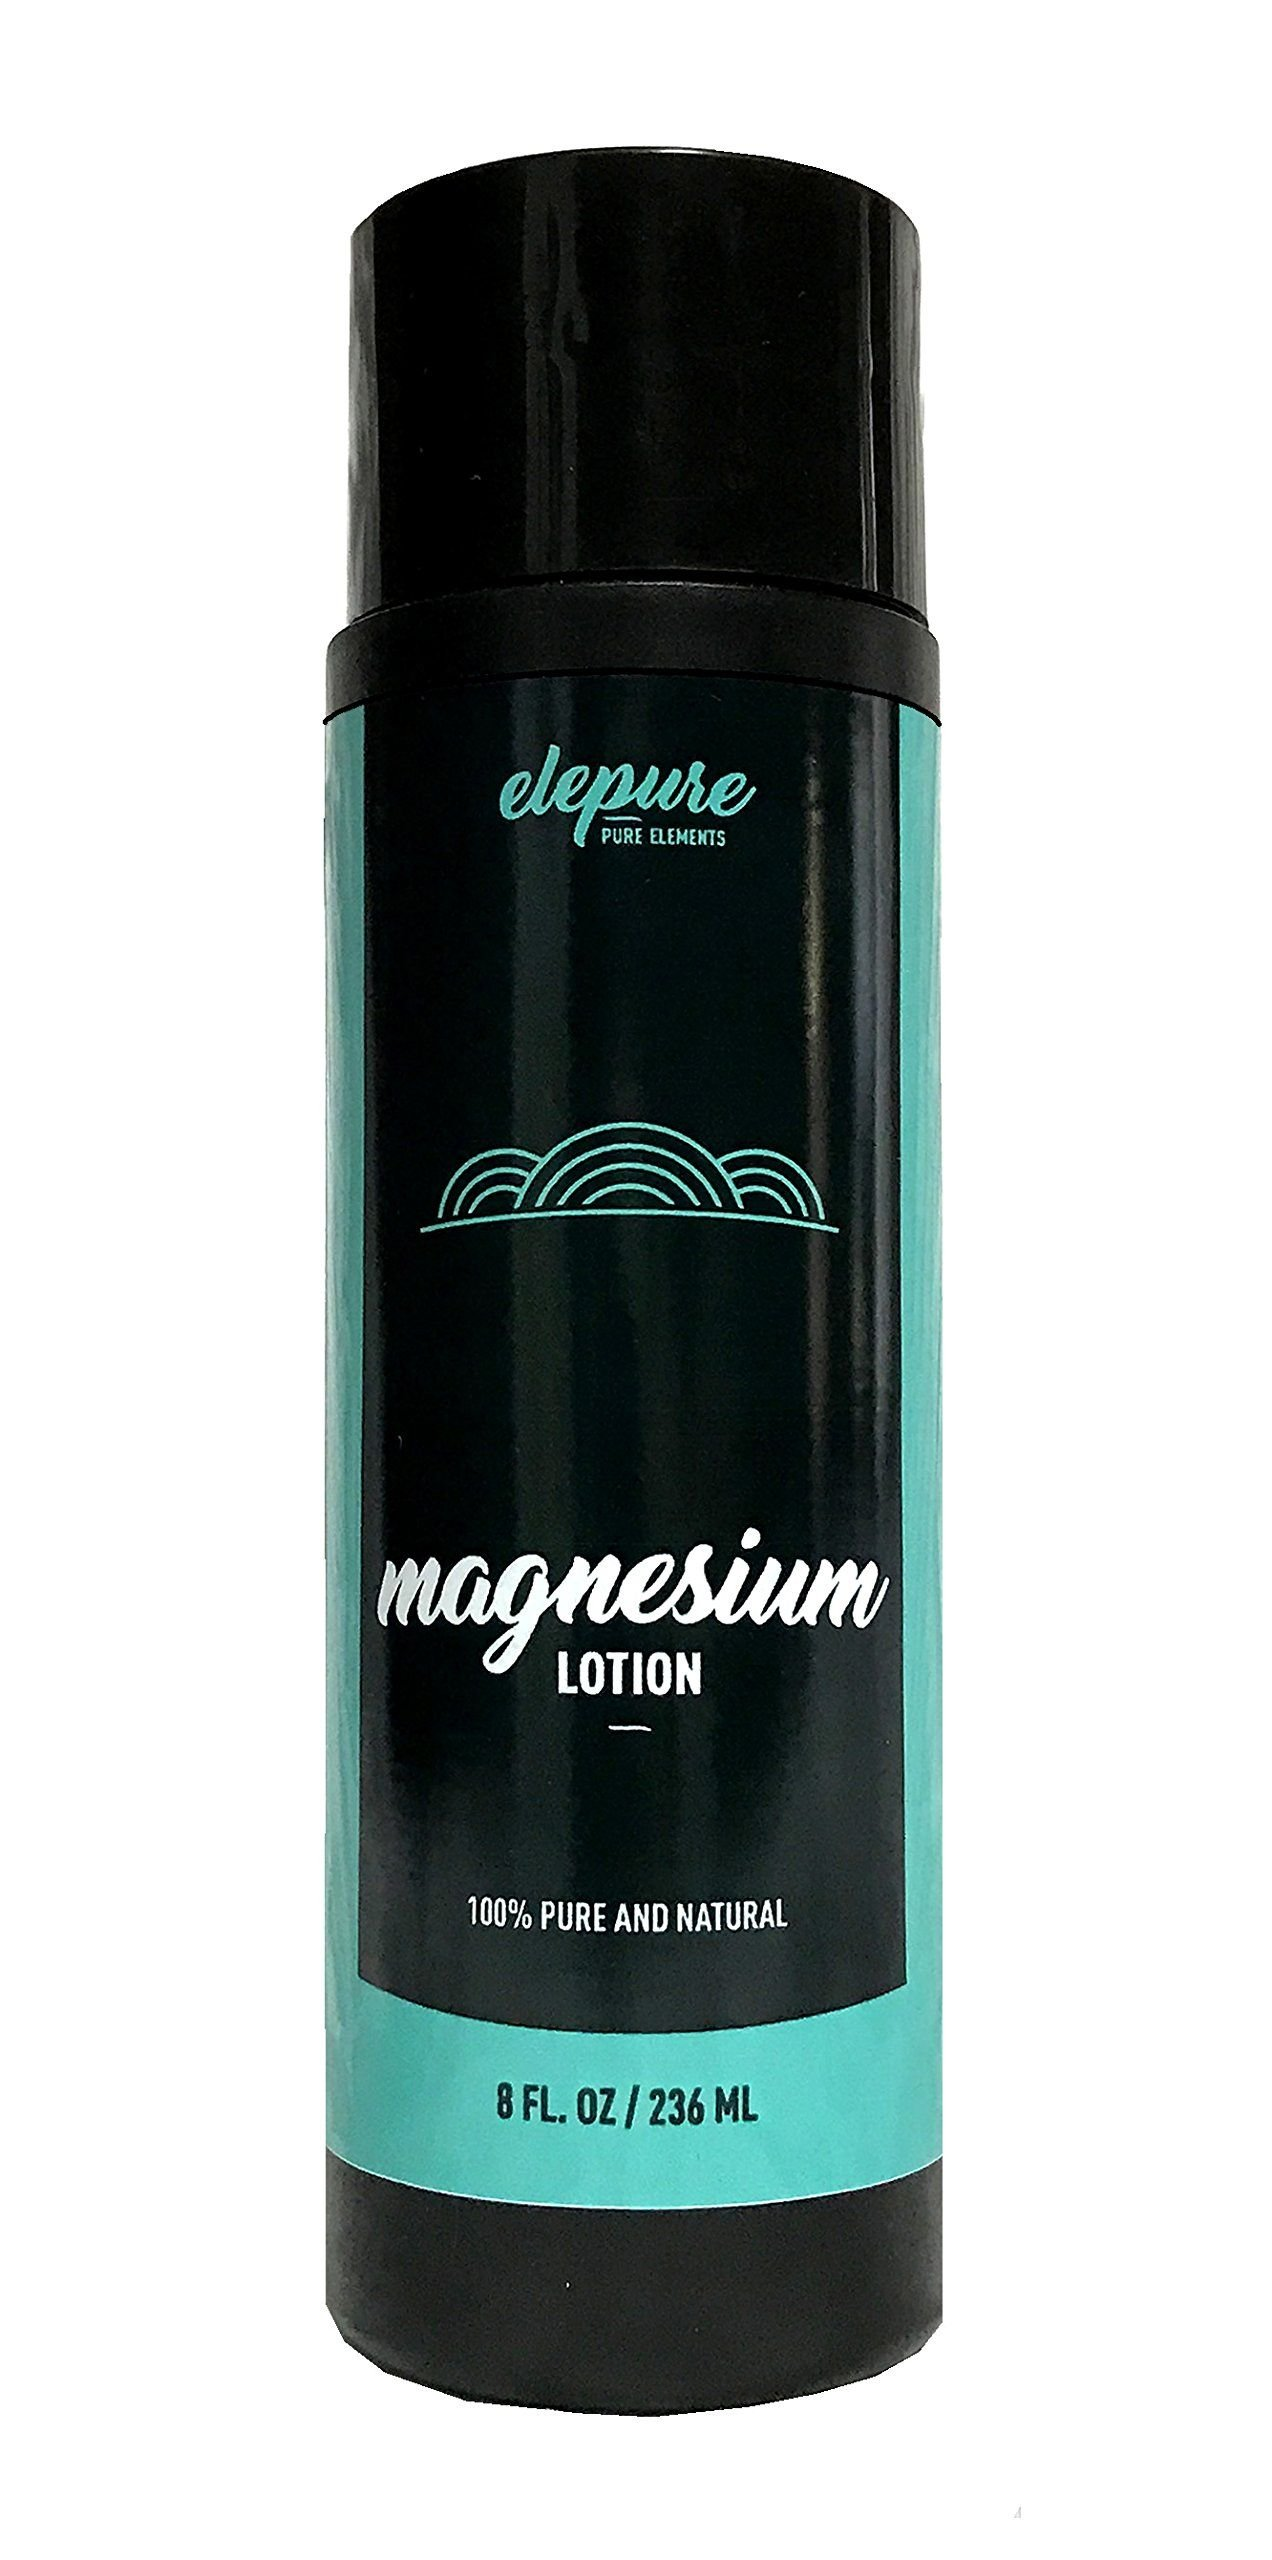 Natural Magnesium Lotion - Highest Potency - Over 1800 MG/oz - 300 mg/tsp - Not Water Based -Elepure 8 oz